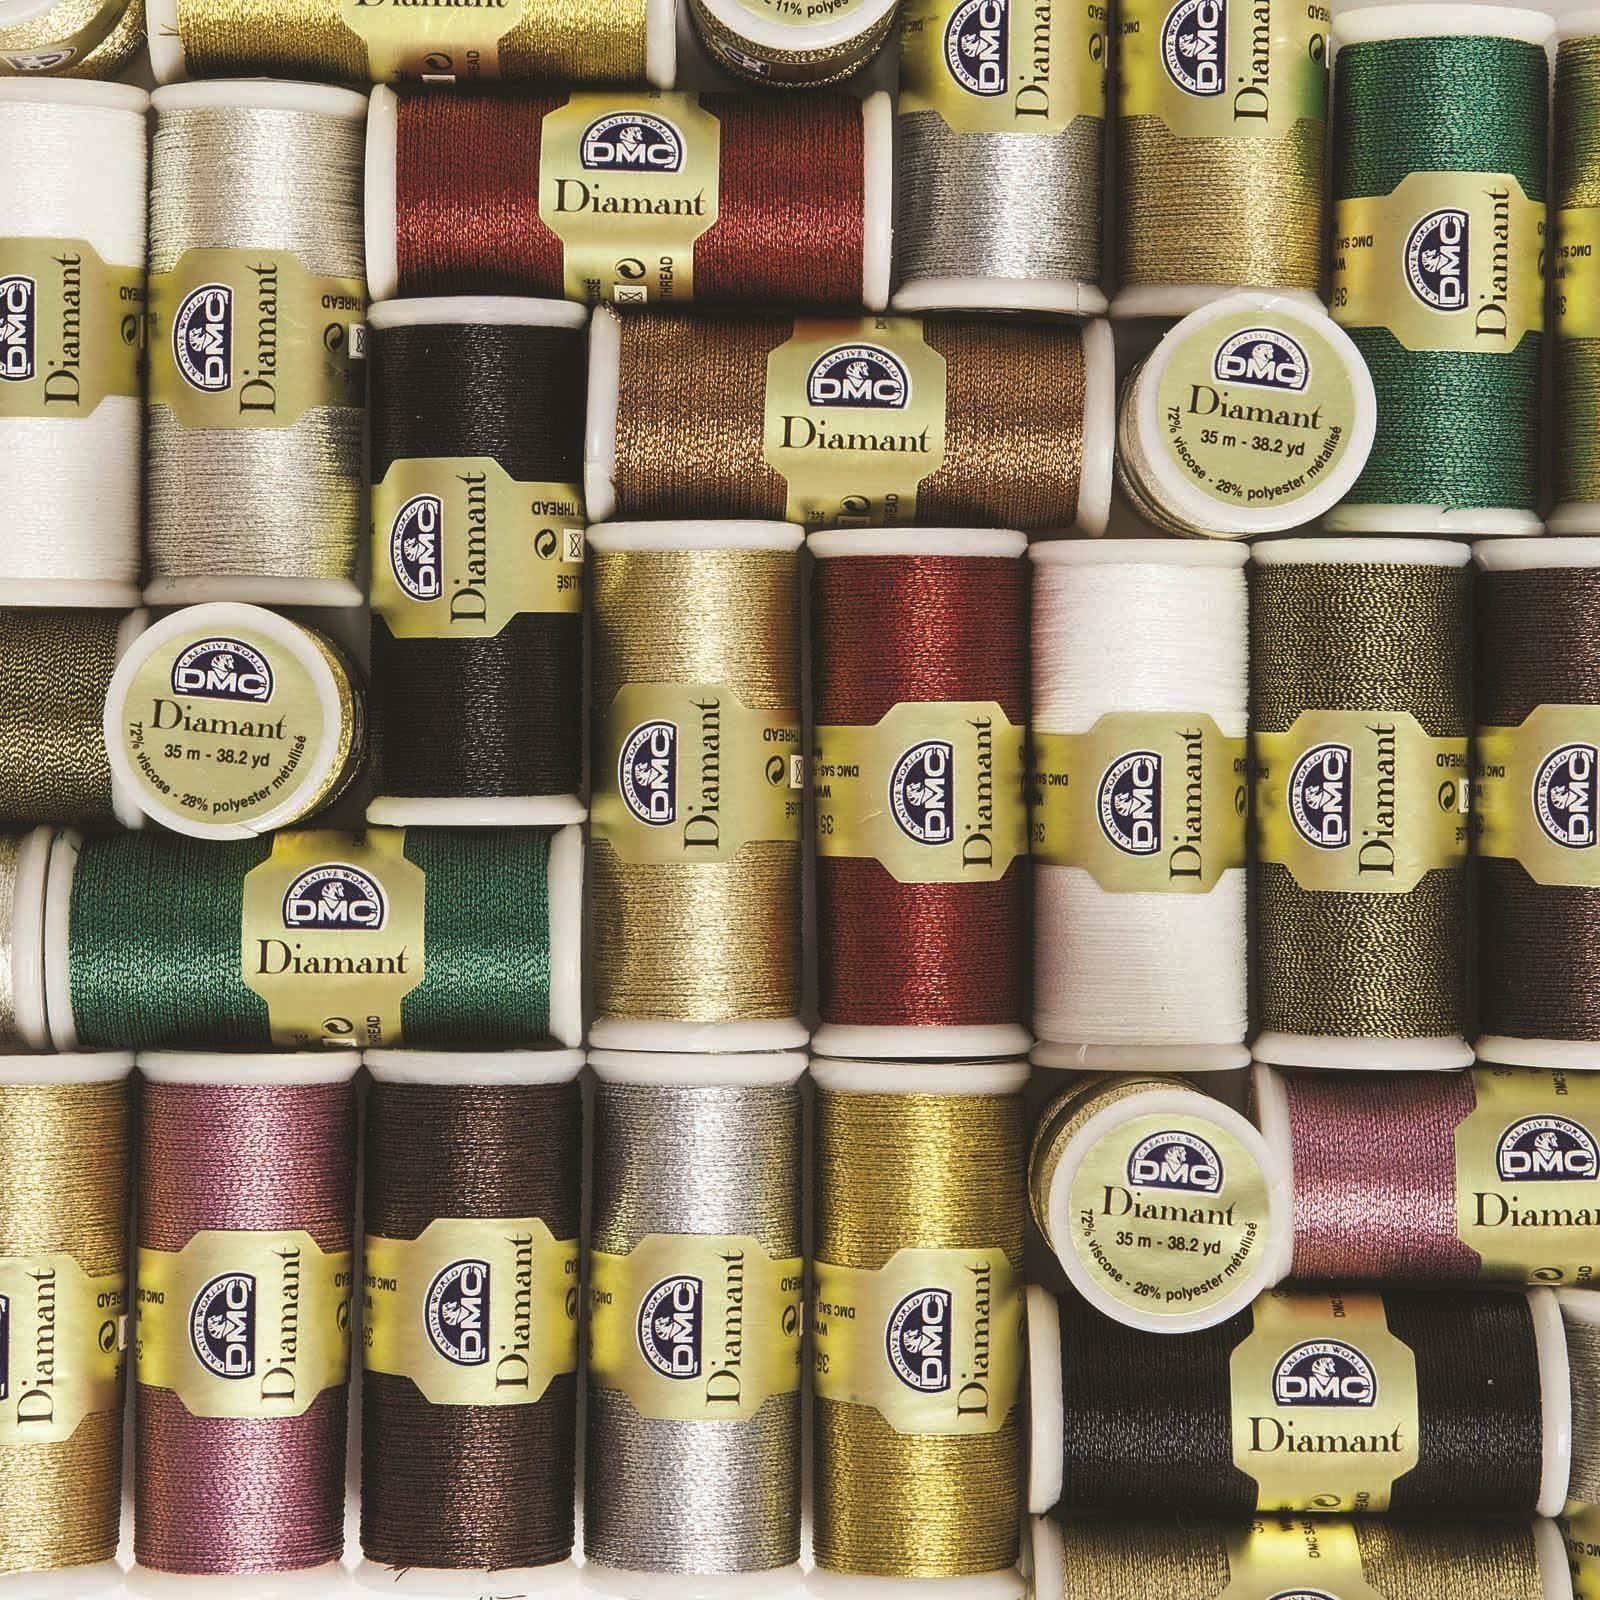 DMC-Diamant-Metallic-Embroidery-Thread-35m-Spool-Cross-Stitch thumbnail 55